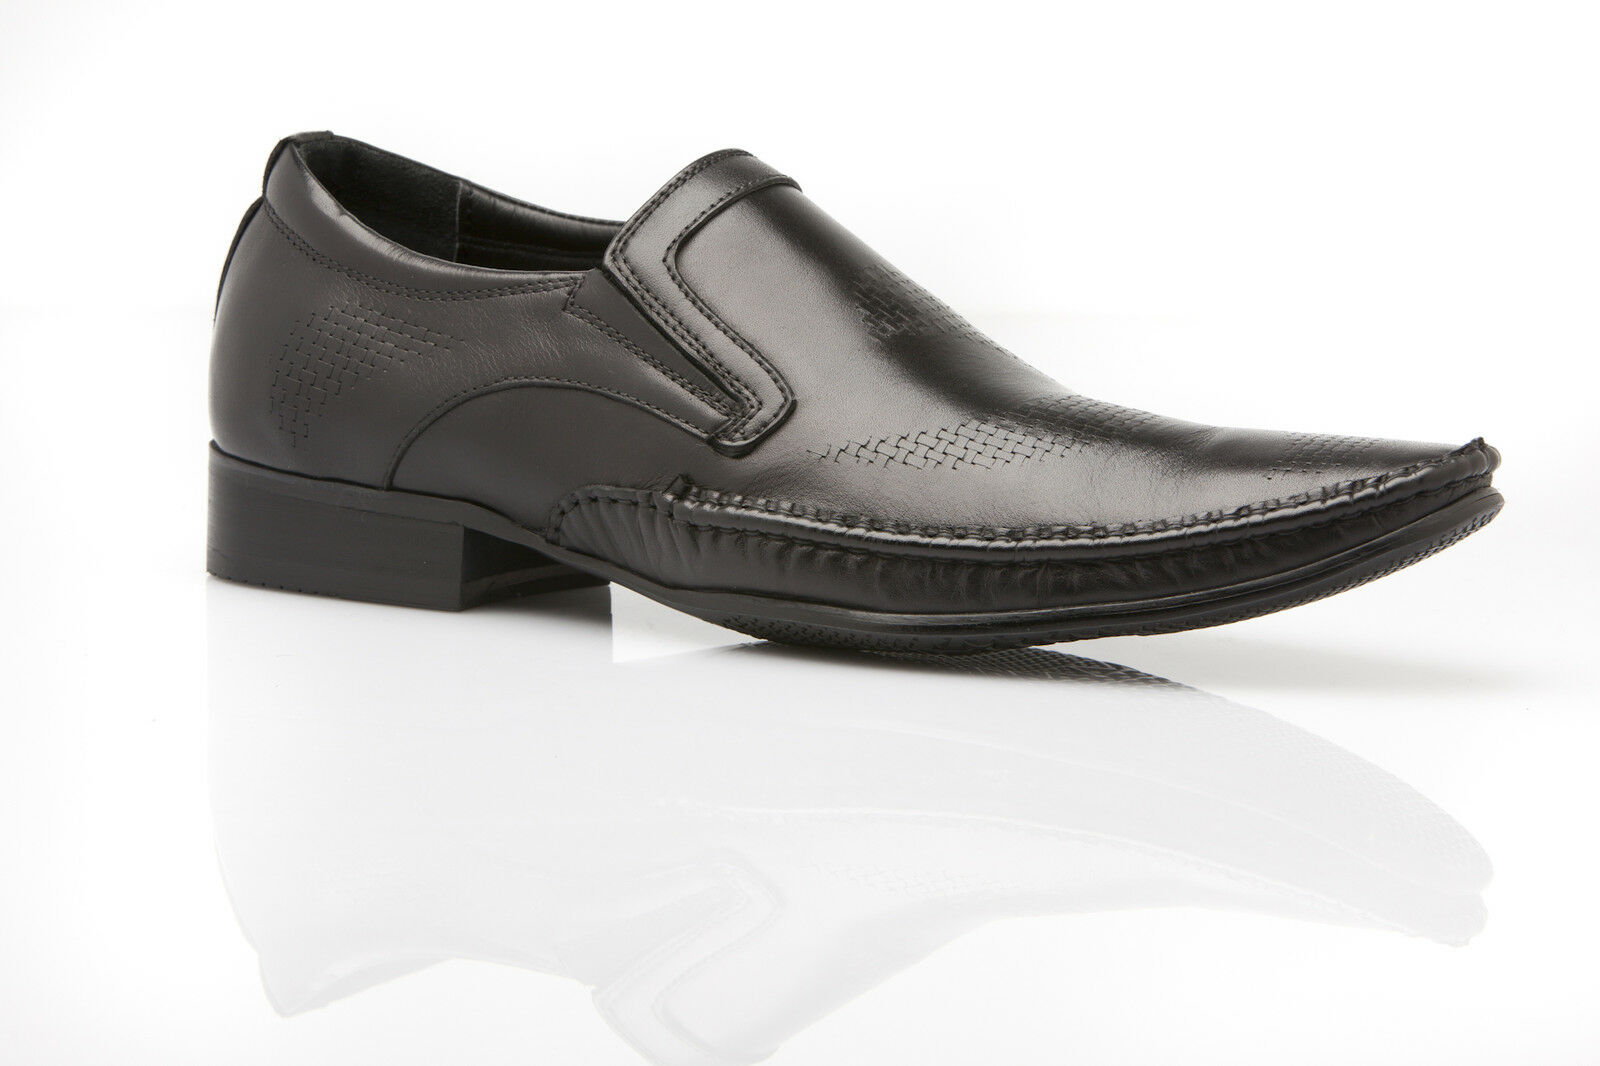 NEW ZASEL MENS DESIGN DRESS BLACK LEATHER SLIP ON SHOES WORK FORMAL CASUAL MEN'S SHOES ON c64a9c